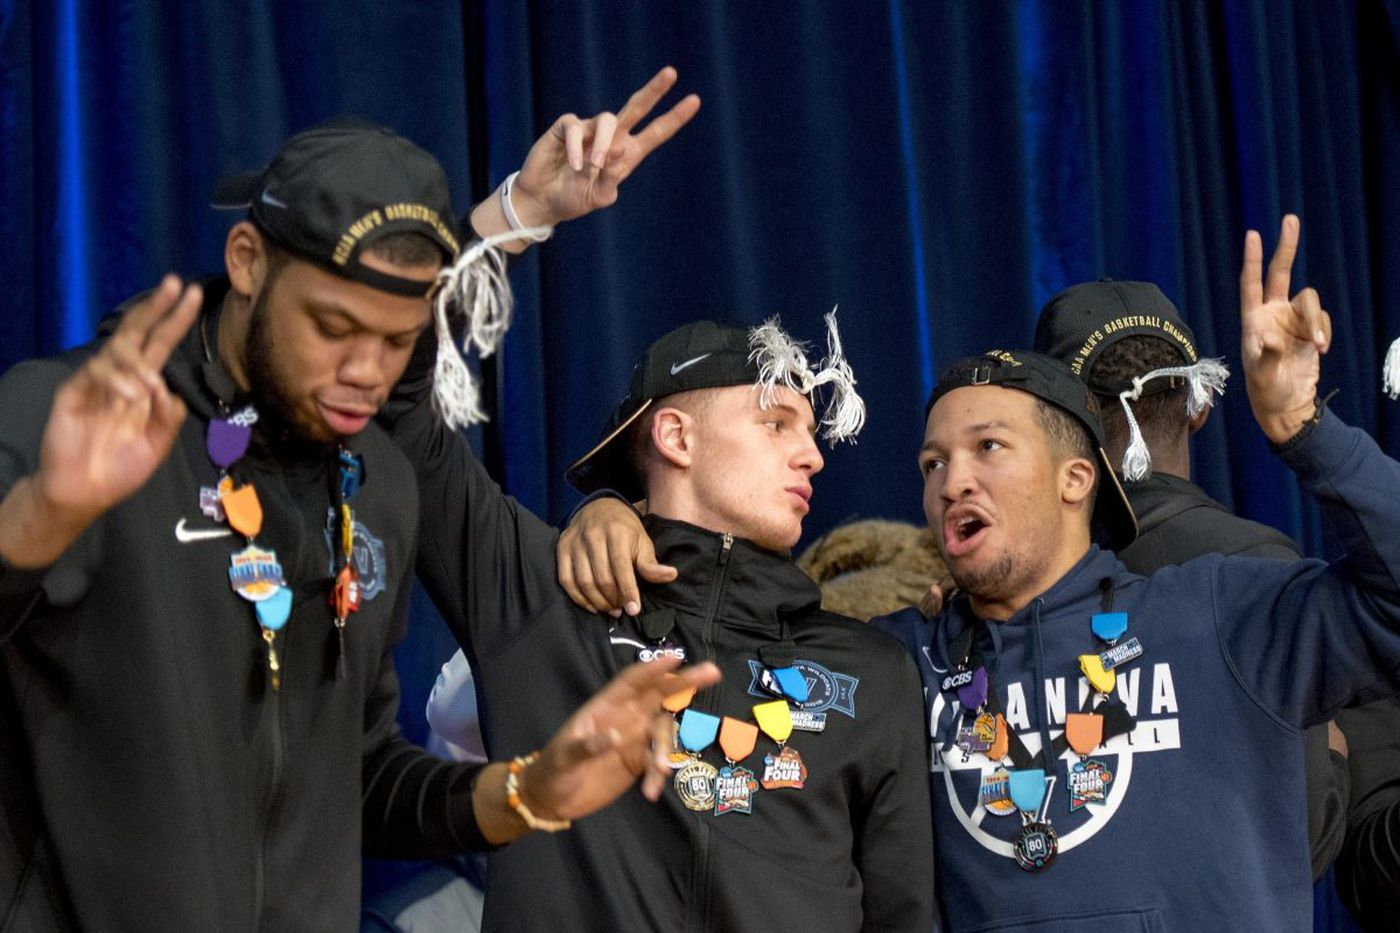 Villanova basketball team returns home and celebrates NCAA title with fans